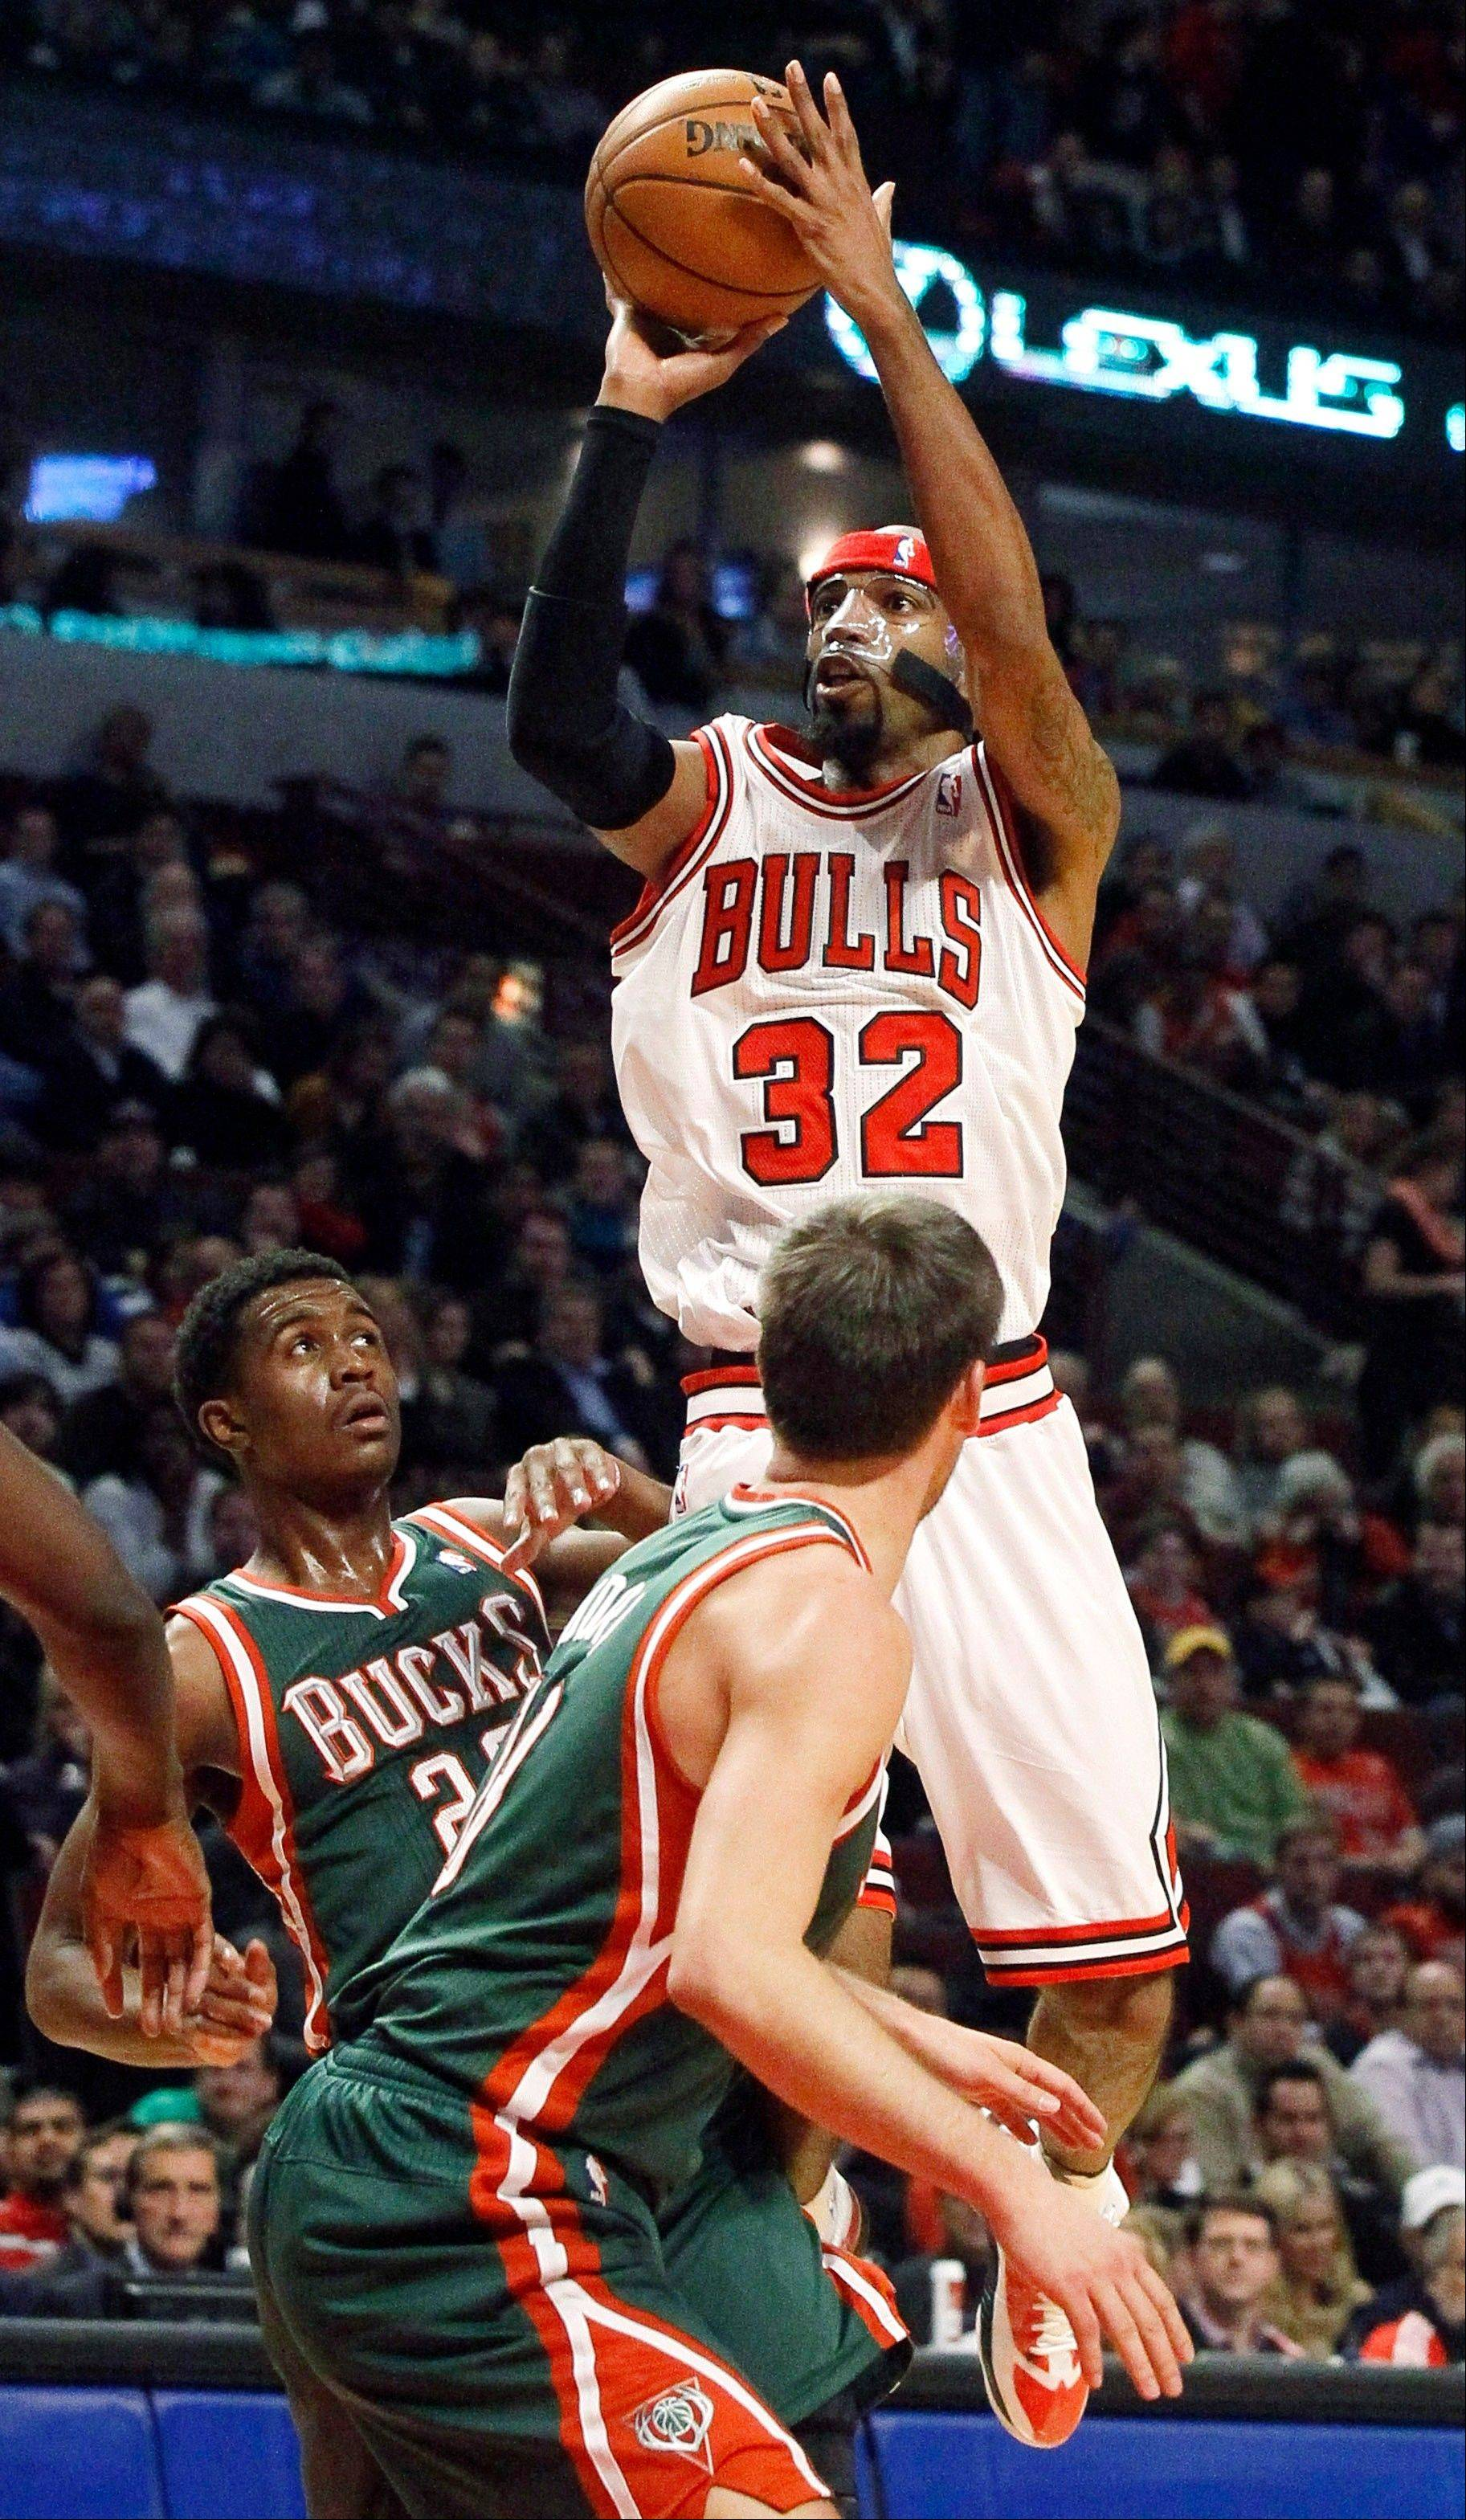 Bulls guard Richard Hamilton had a chance to save the Bulls on Monday after they squandered a 27-point lead, but his last-second shot was off the mark.